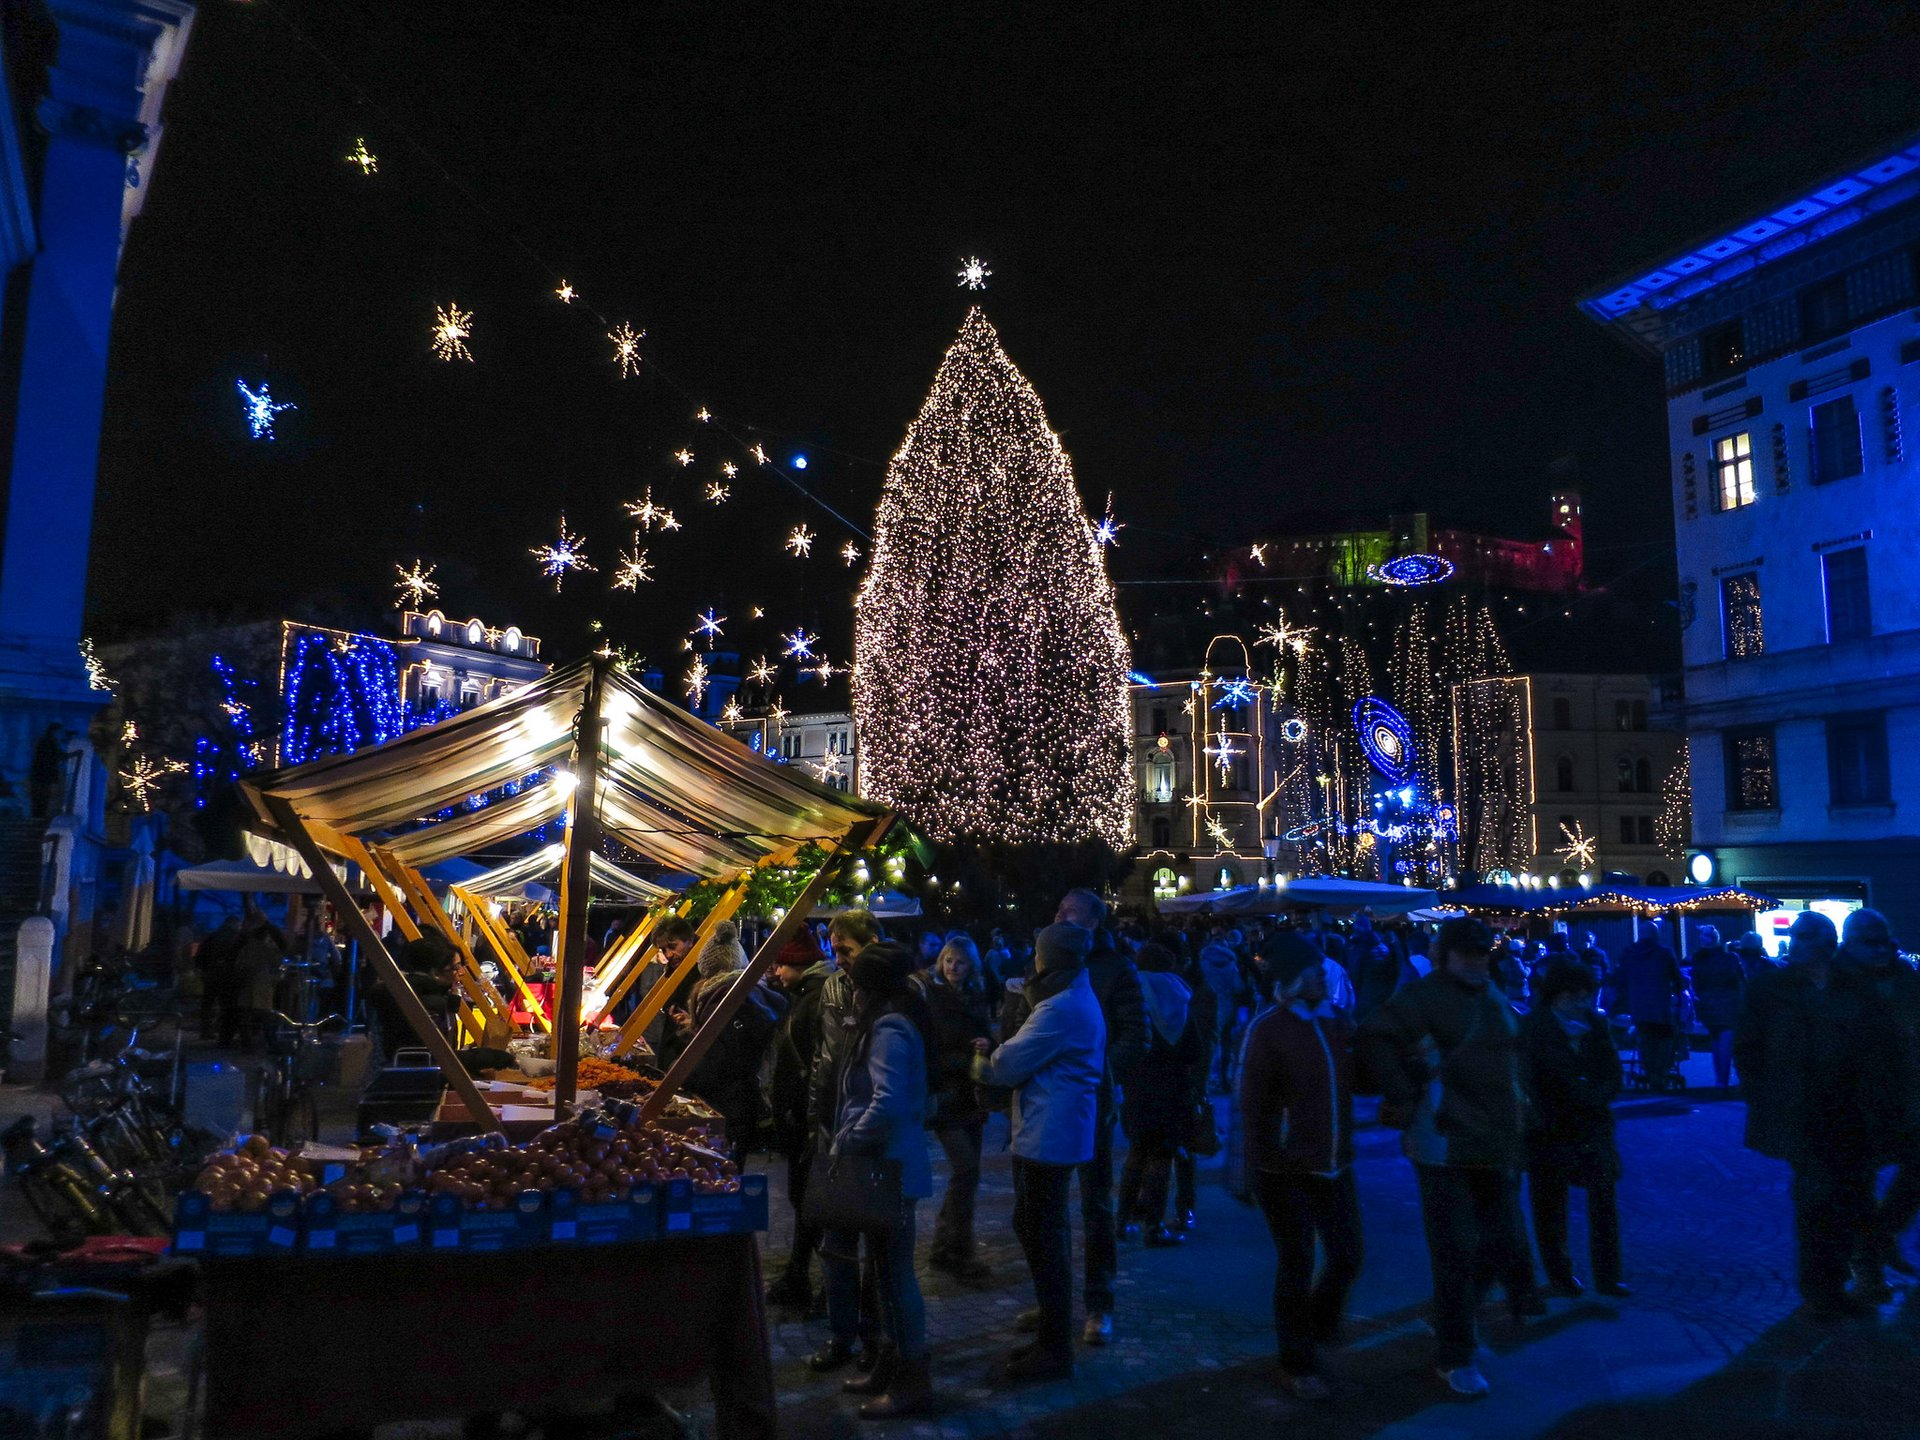 Christmas Markets in Slovenia 2020 - Best Time